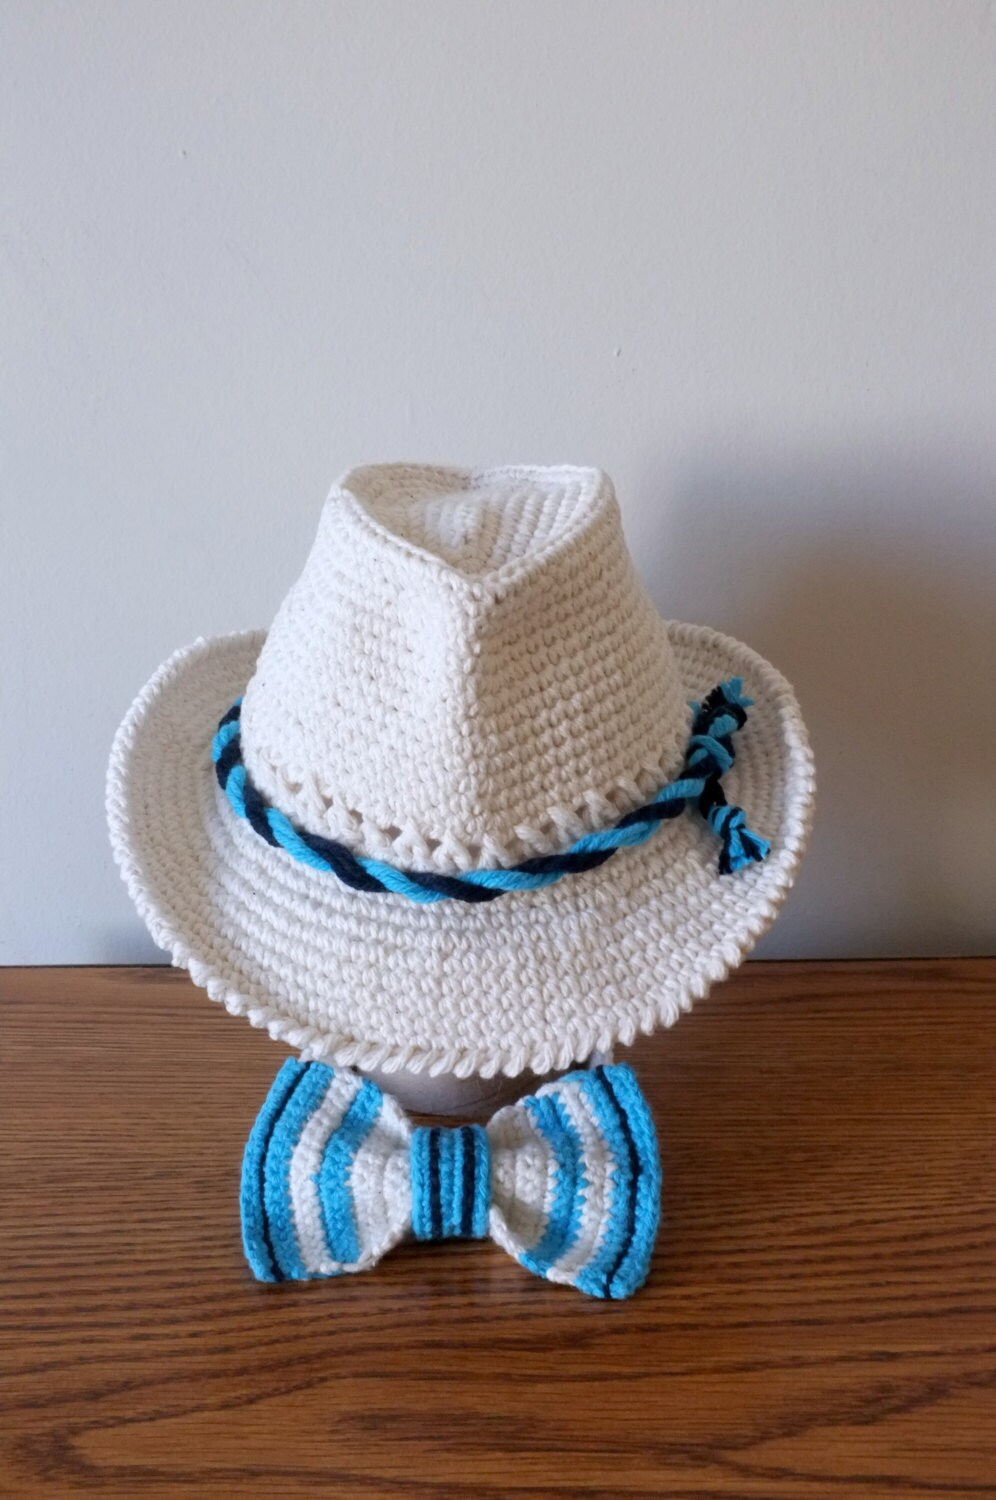 Crochet Baby Fedora Hat And Bow Tie Set Toddler Summer Panama